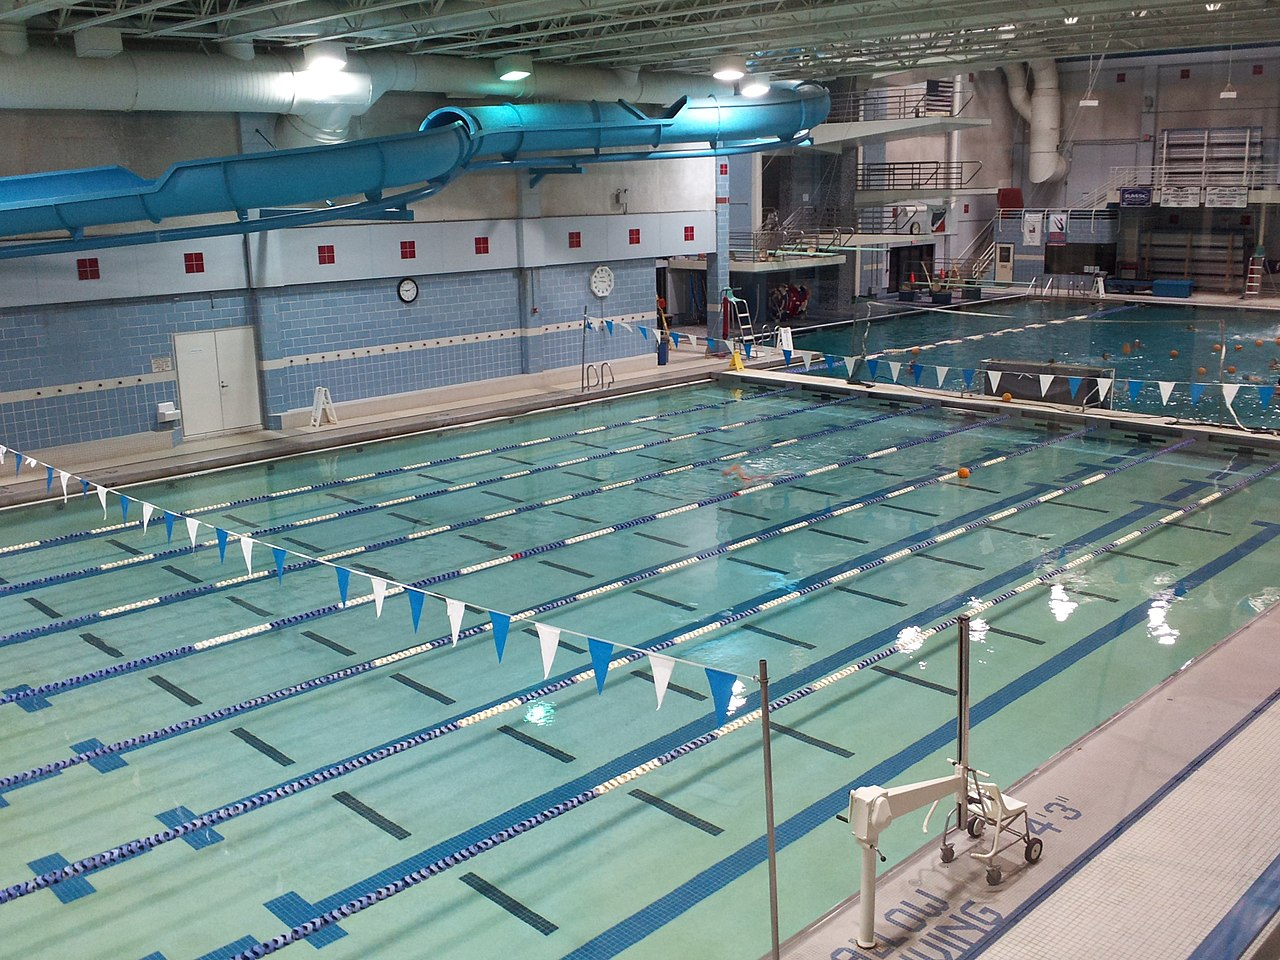 File:Montgomery Aquatic Center lap pool.jpg - Wikimedia ...